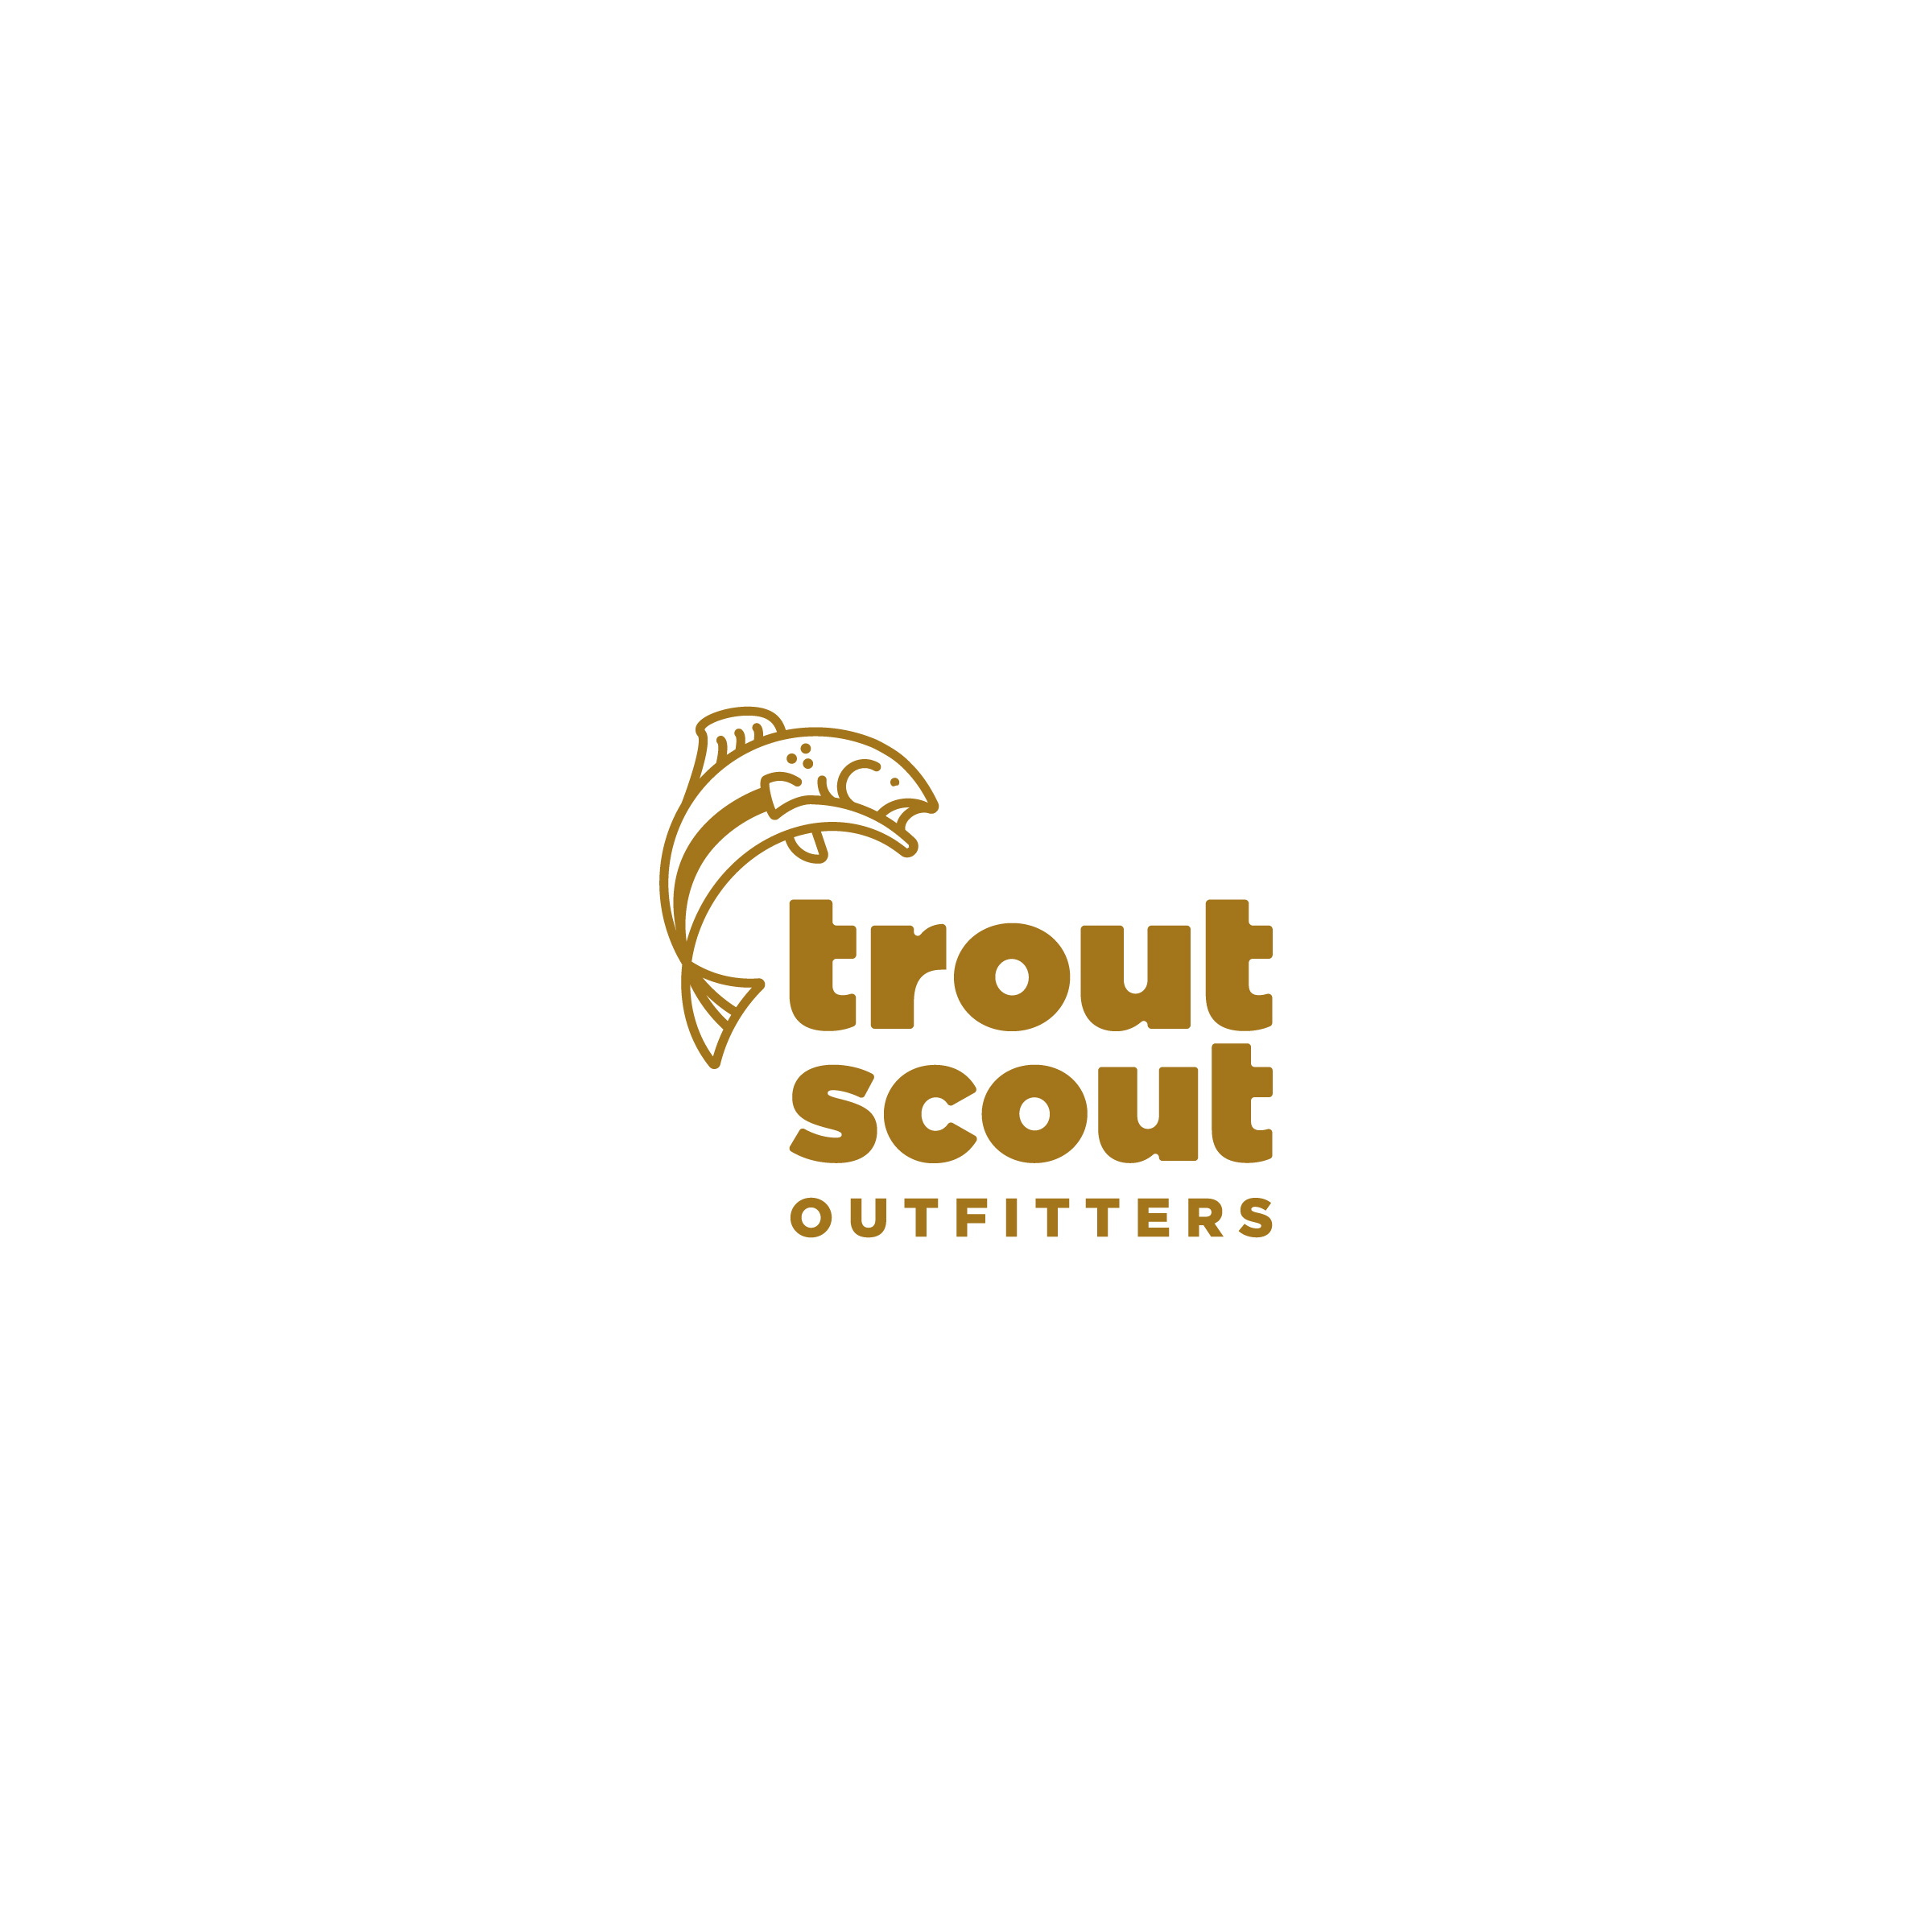 TroutScoutOutfitters_LtBrown_Vert.jpg